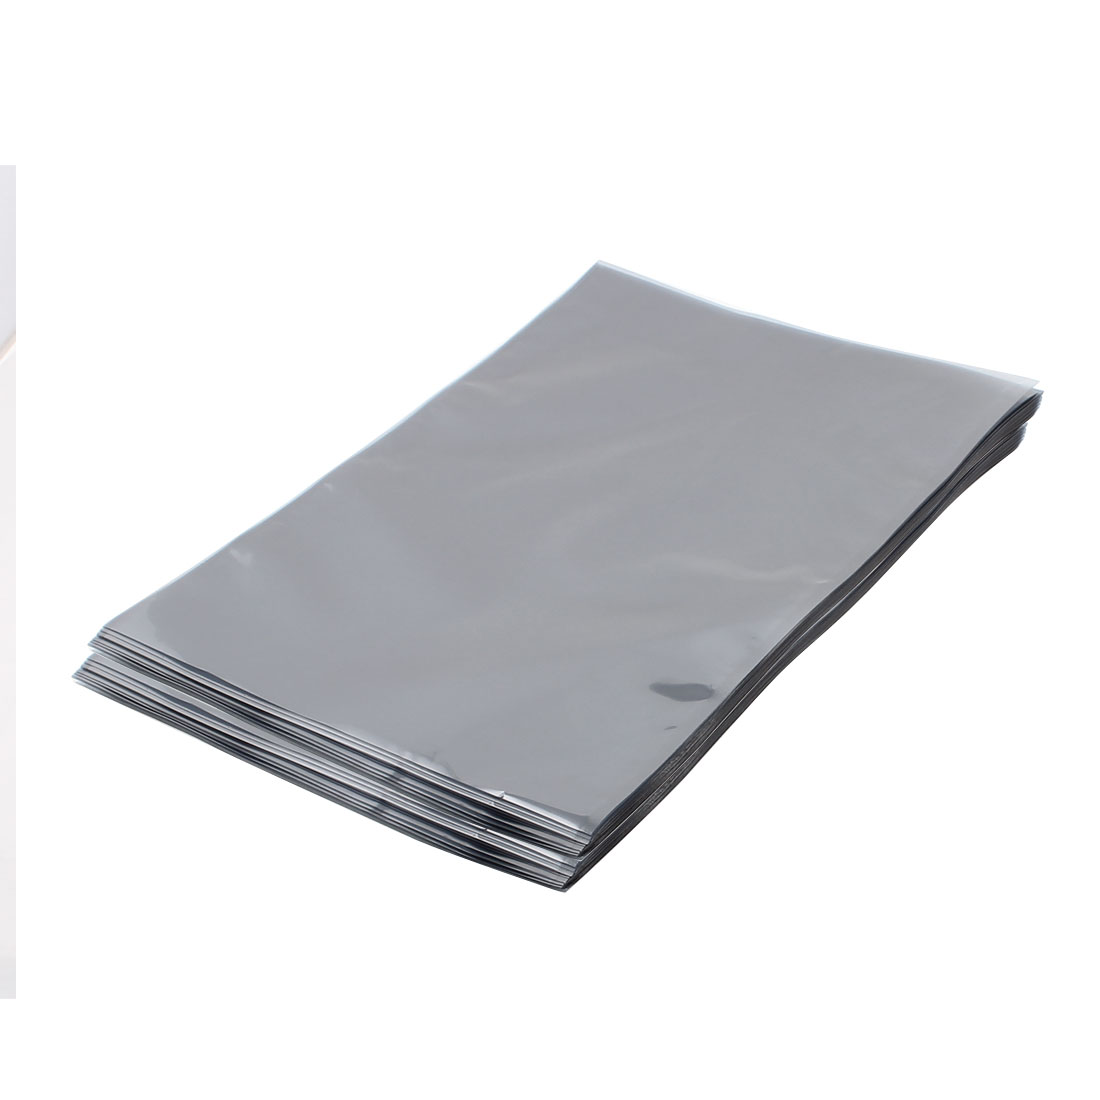 100 Pcs 270mm x 400mm Silver Tone Flat Open Top Anti Static Bag For Electronics